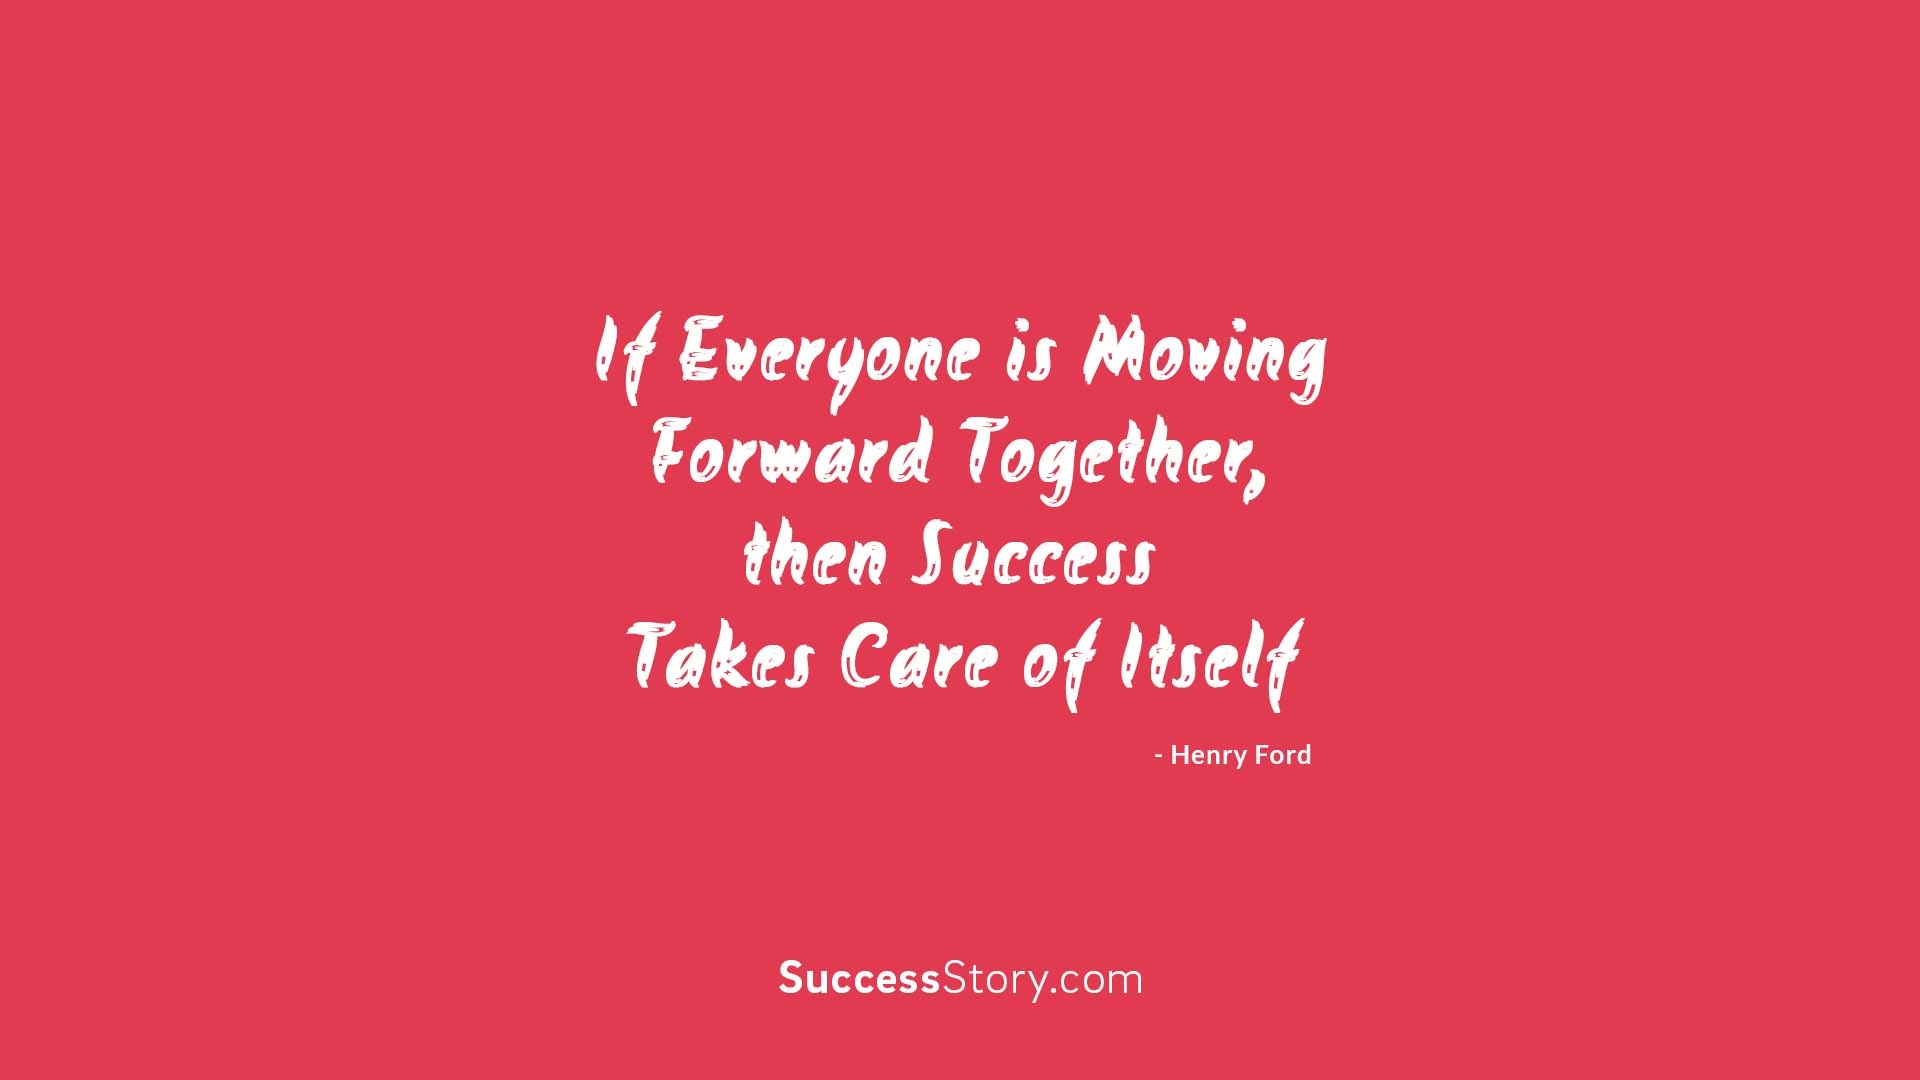 Henry ford quotes famous quotes successstory for Moving in together quotes